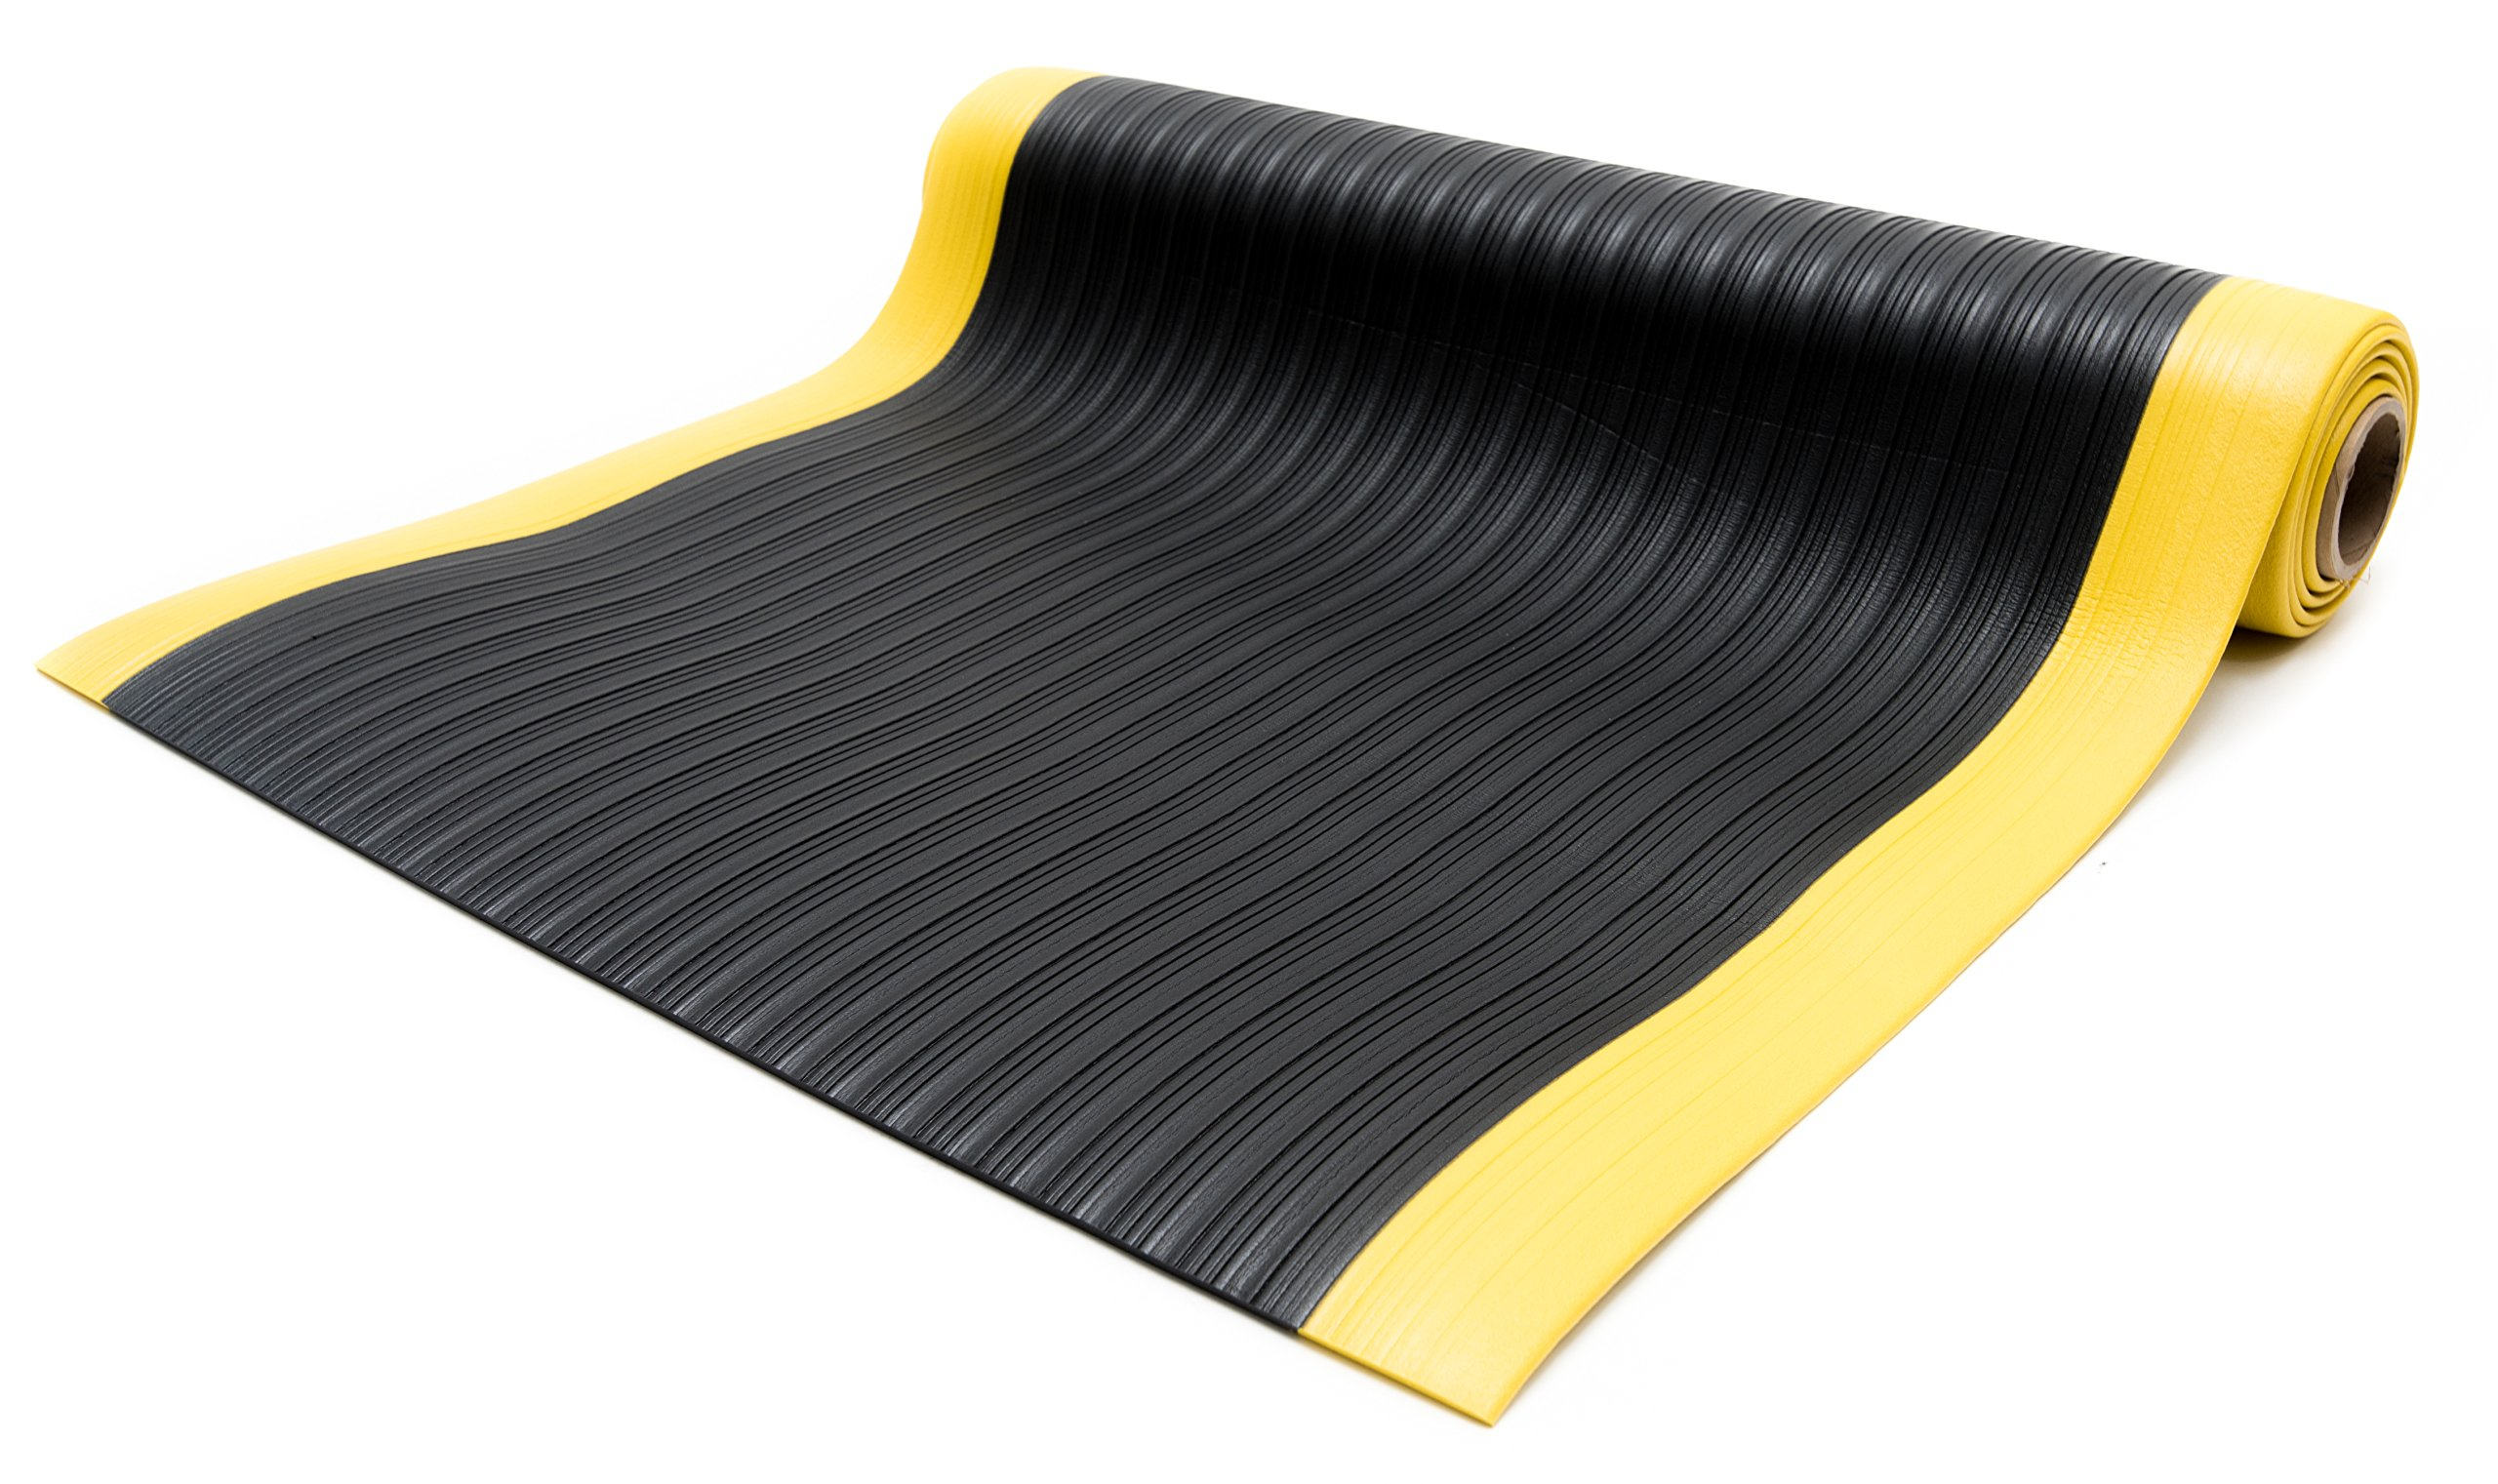 Bertech Anti Fatigue Vinyl Foam Floor Mat, 4' Wide x 6' Long x 3/8'' Thick, Ribbed Pattern, Black w/Yellow Border (Made in USA)